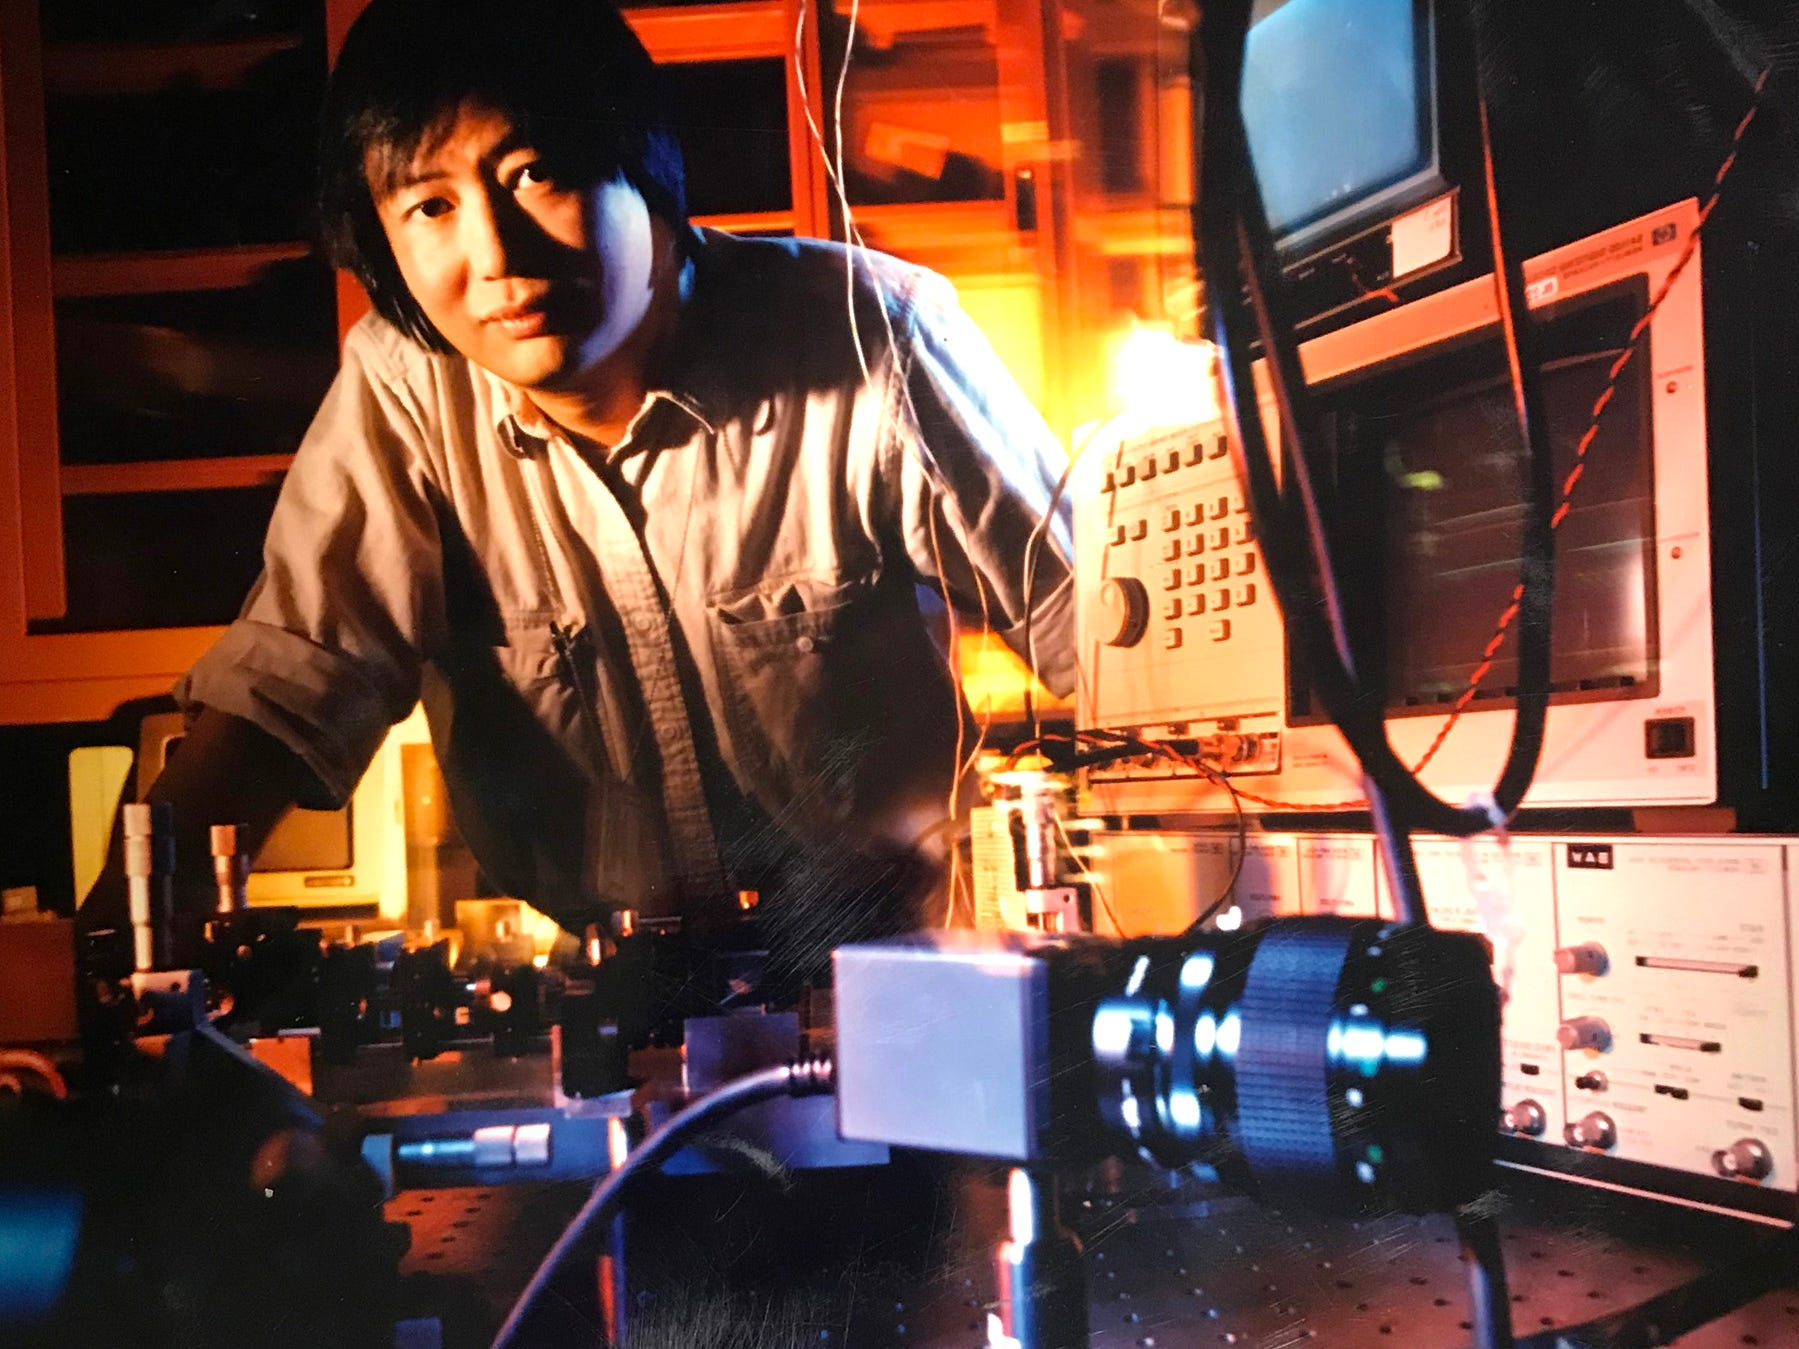 1990- Alan Huang, one of the AT&T Bell Laboratories research scientist who helped develop the world's first digital optical processor, in his labrotory. The optical processor, which makes use of light (photons), as opposed to electtrons, to process information, may eventually enable computers to operate 1,000 times faster then their electronic counterpart today.